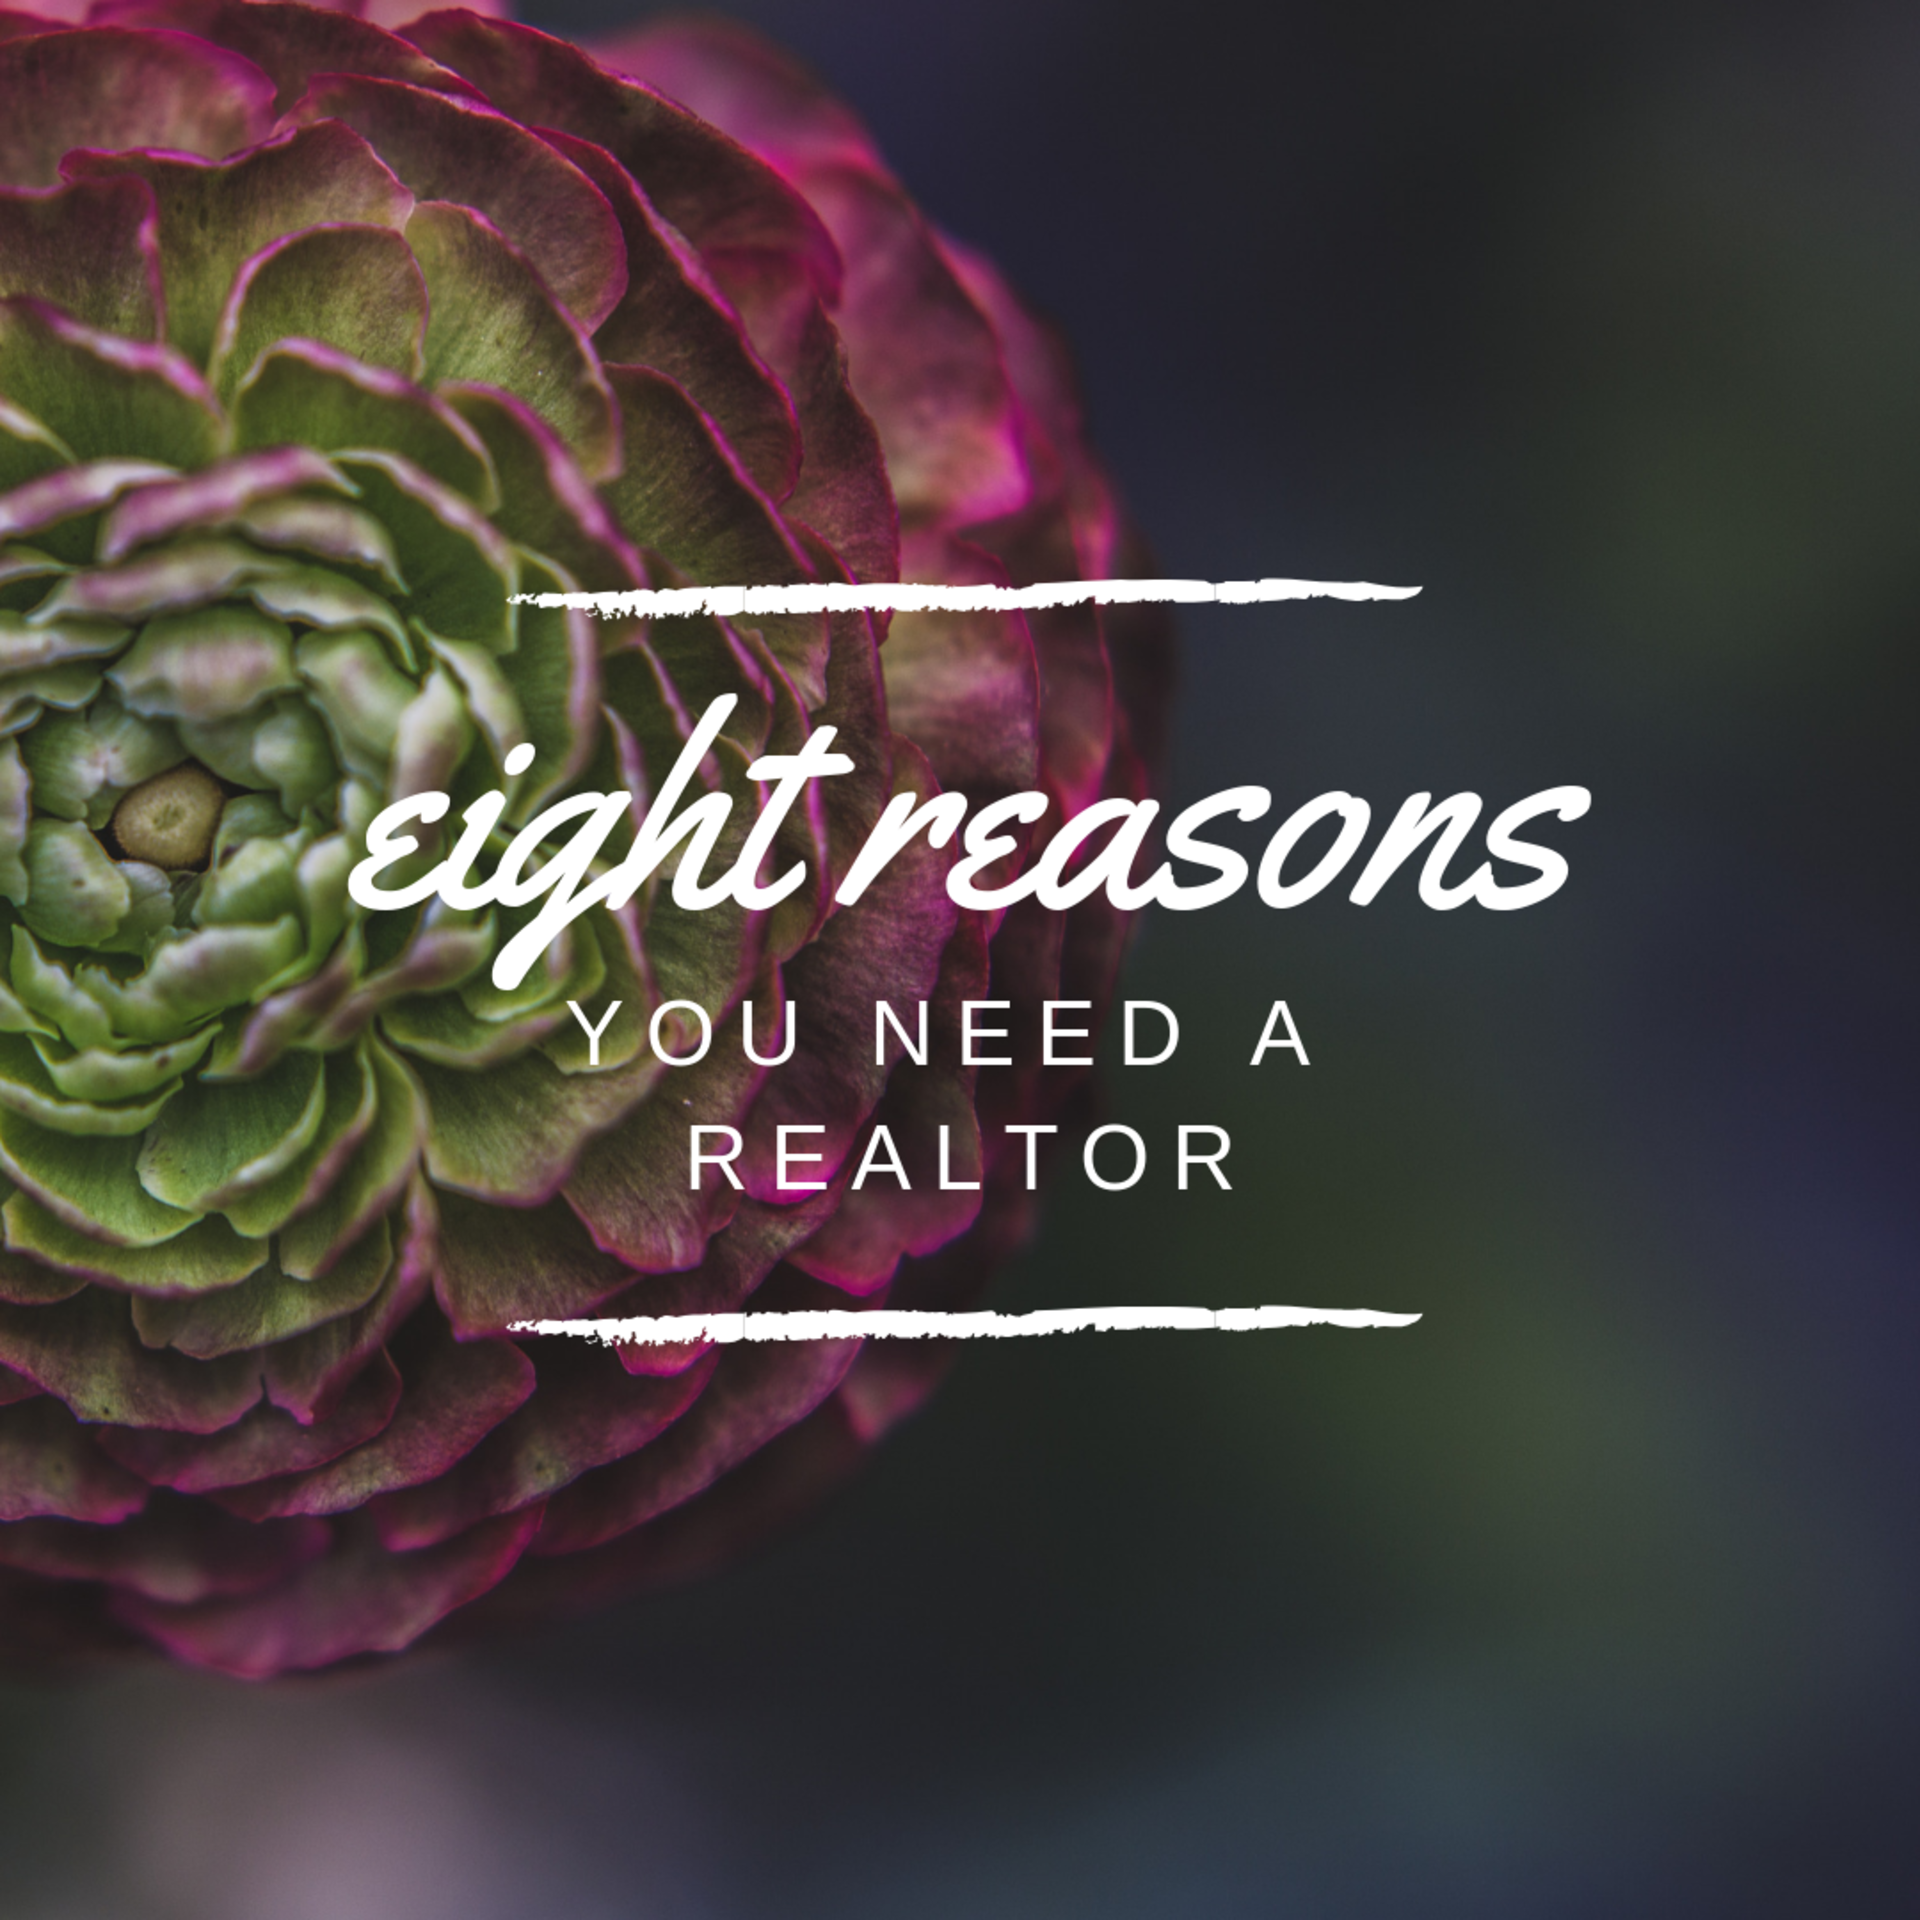 8 Reasons You Need a Realtor